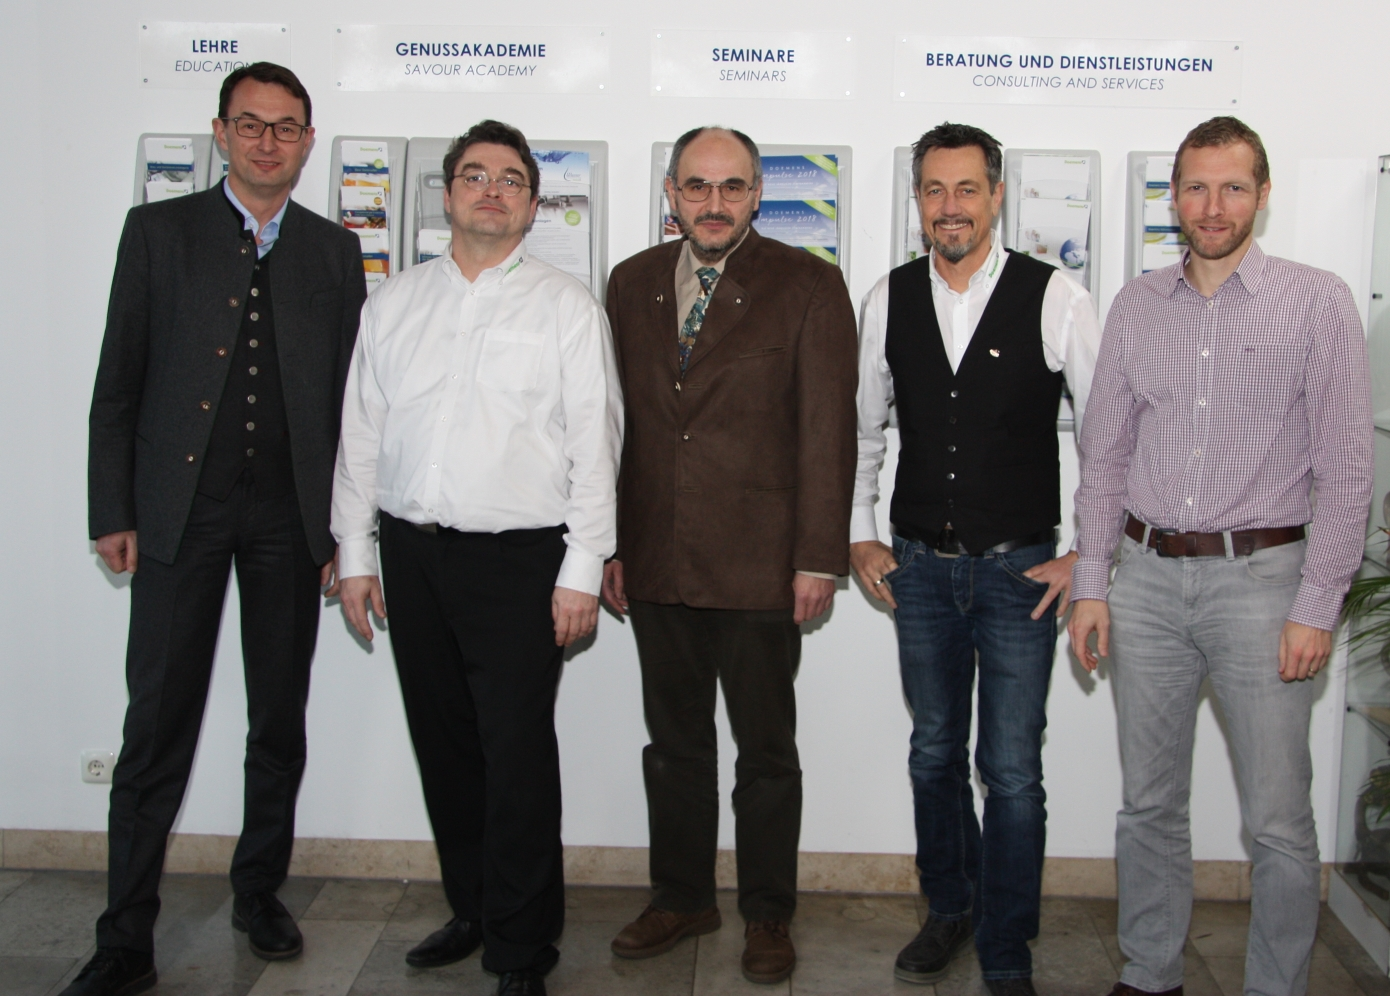 The Doemens CEO and the Managing Directors of the different divisions